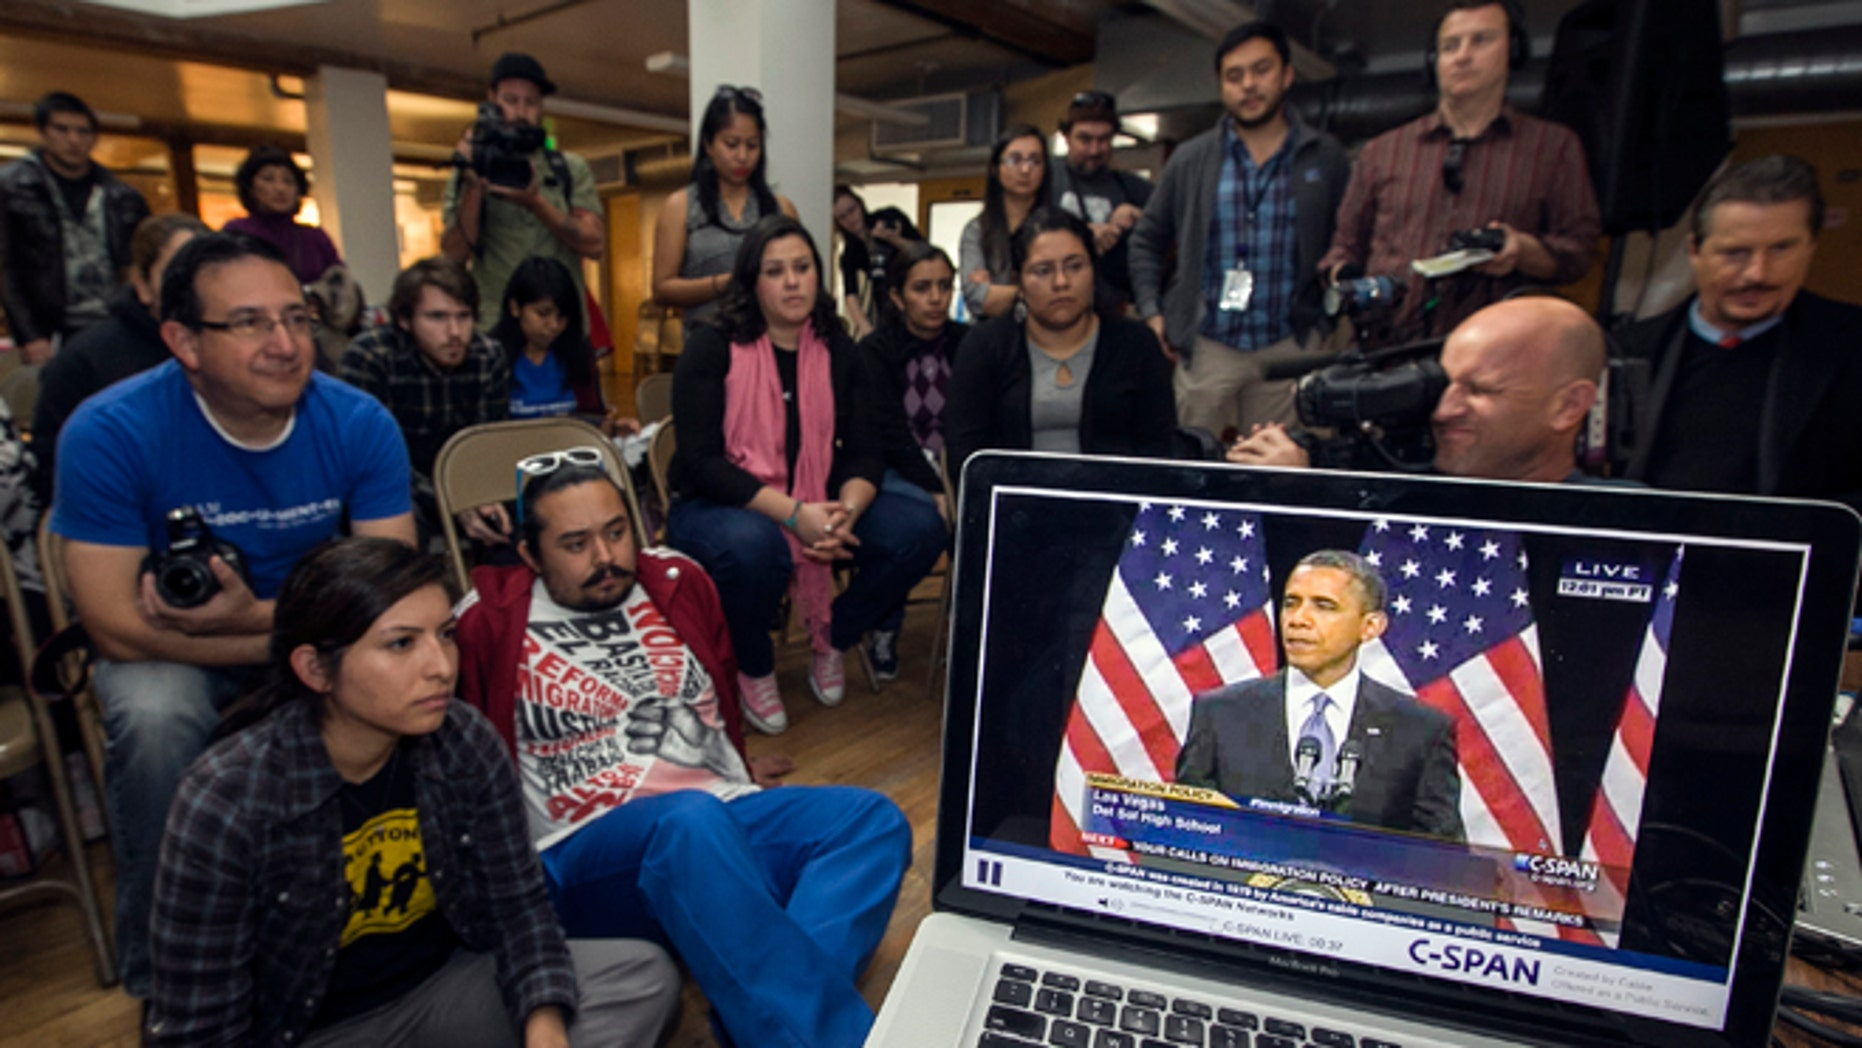 Members of the DREAM Team LA, a Los Angeles immigrants rights group, watch a live video stream of President Obama, Jan. 29, 2013.